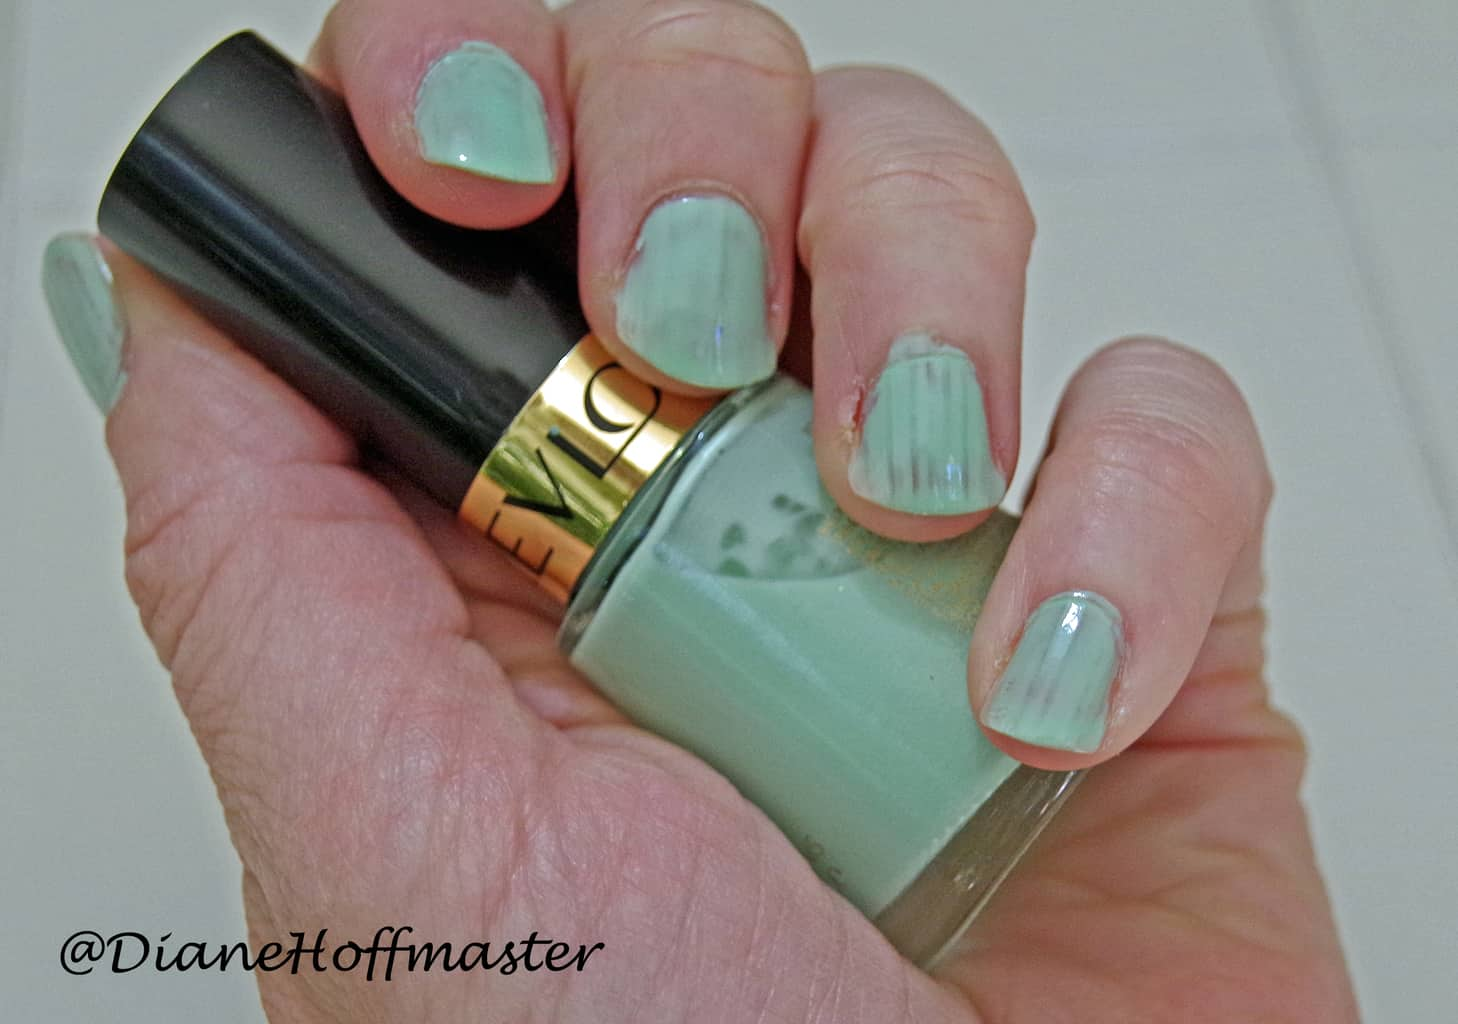 This weekend\'s nail art project! - Suburbia Unwrapped